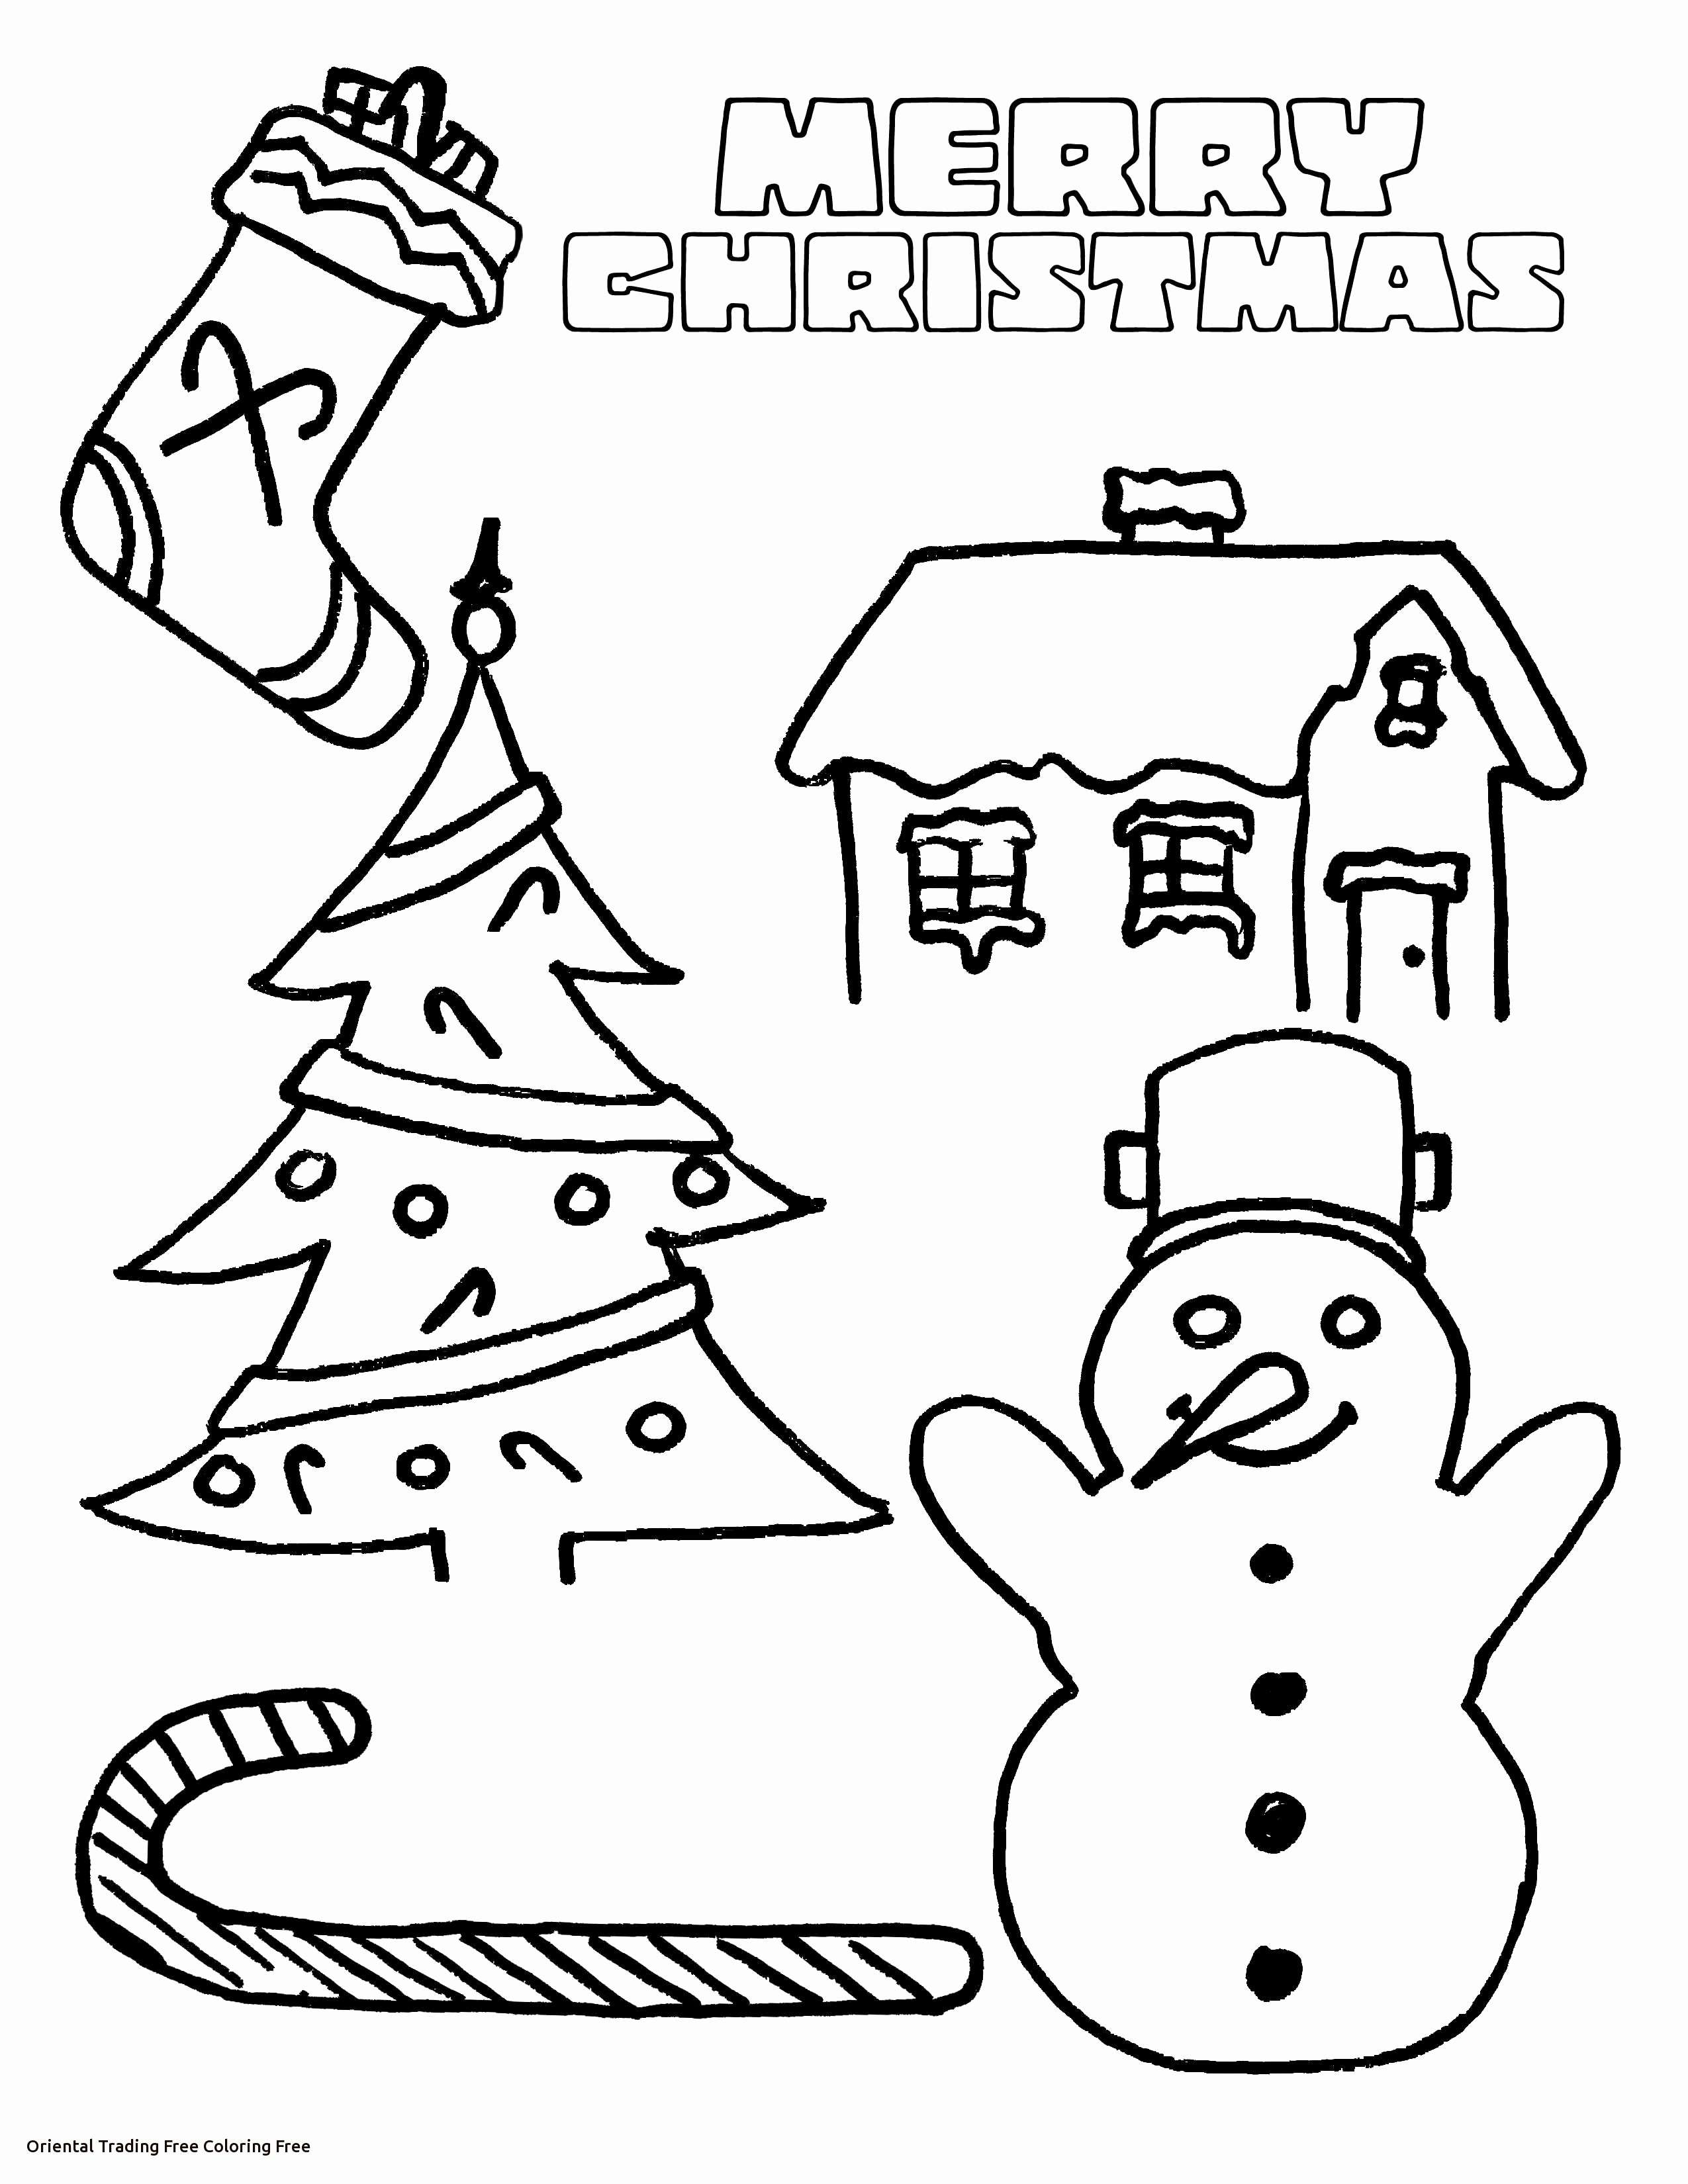 Christmas Coloring Printable Cards With 60 Lovely Pages Card Dannerchonoles Com